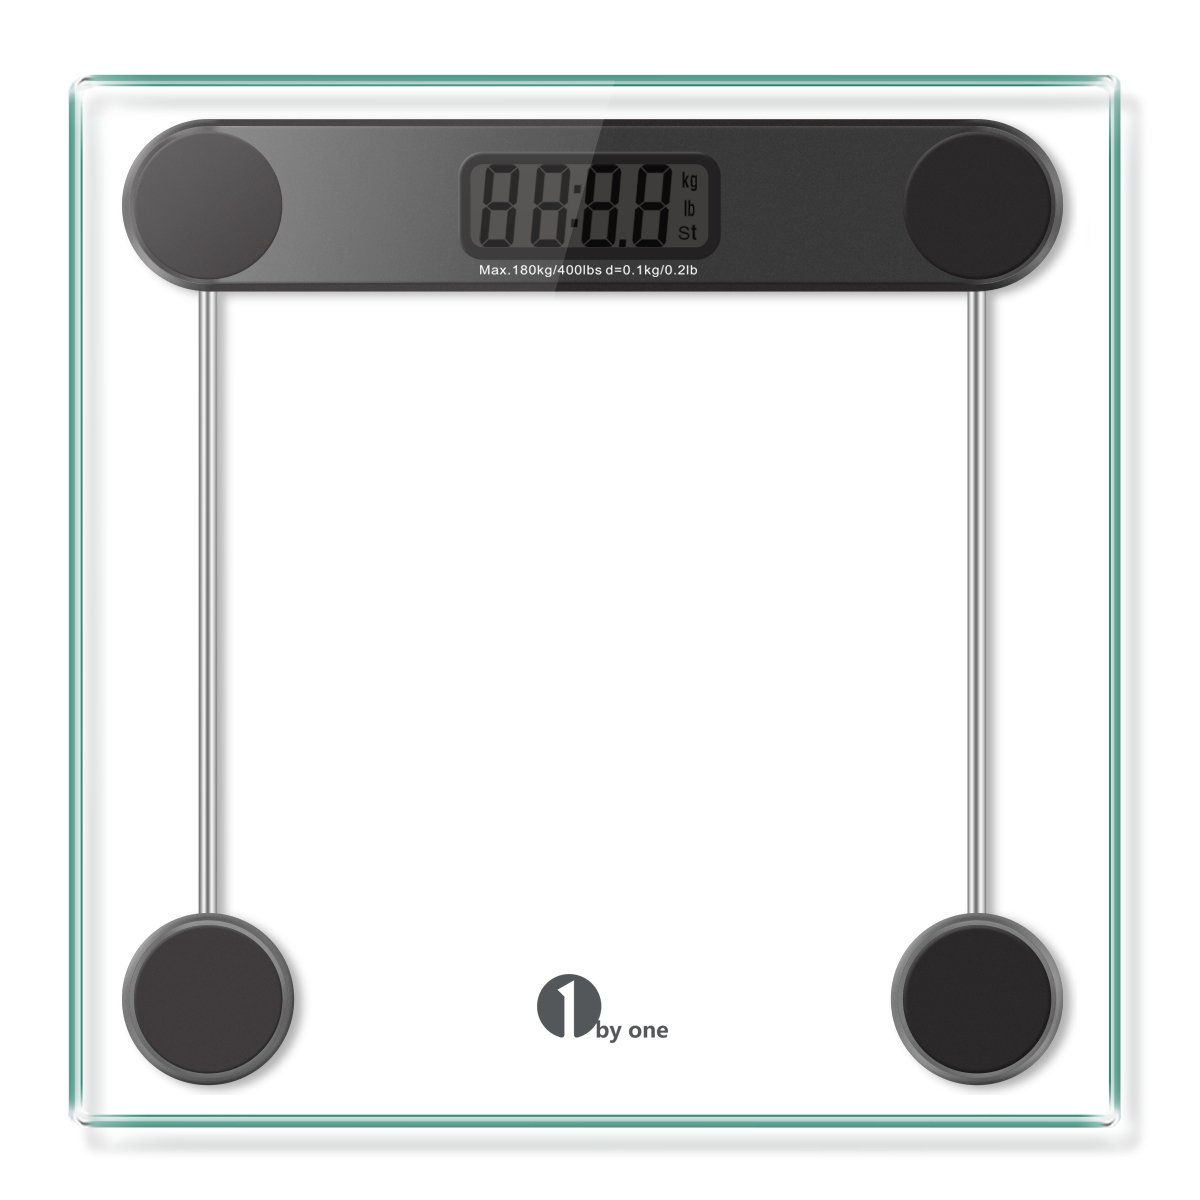 Amazon scale bathroom - Amazon Com 1byone Digital Body Weight Scale Bathroom Scale With Step On Technology 6mm Glass Max Weight 400 Pounds Health Personal Care